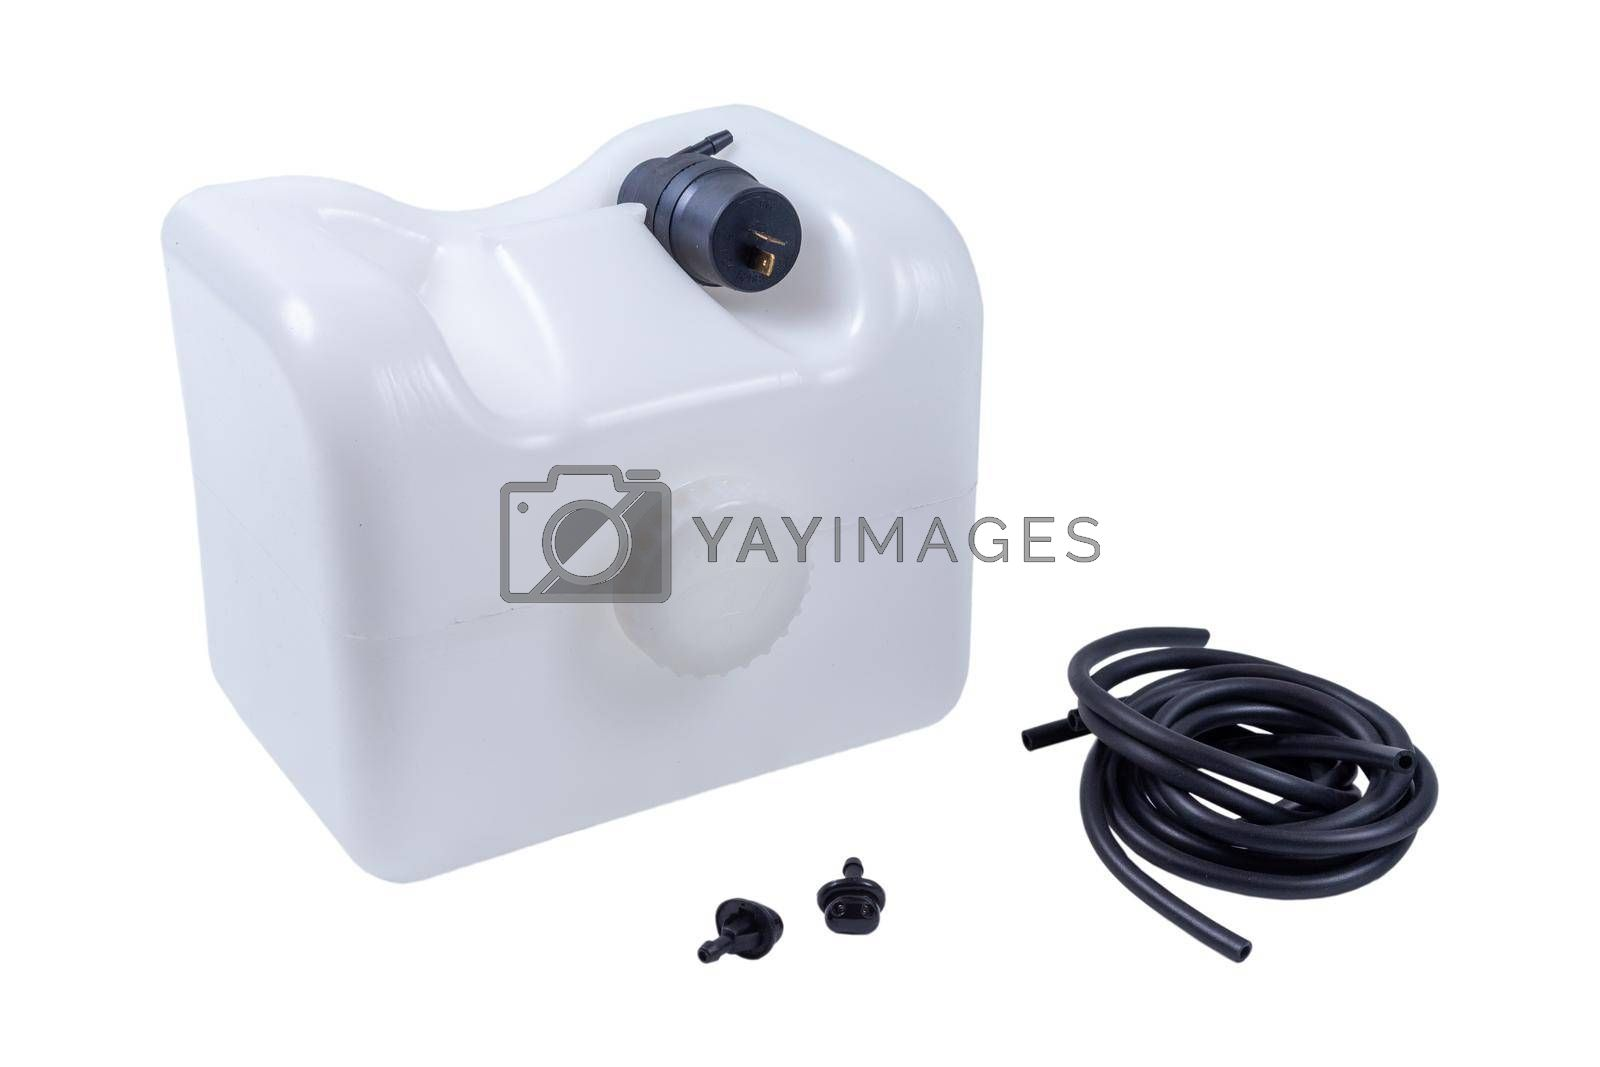 windshield washer tank with hose and nozzles for installation on the car